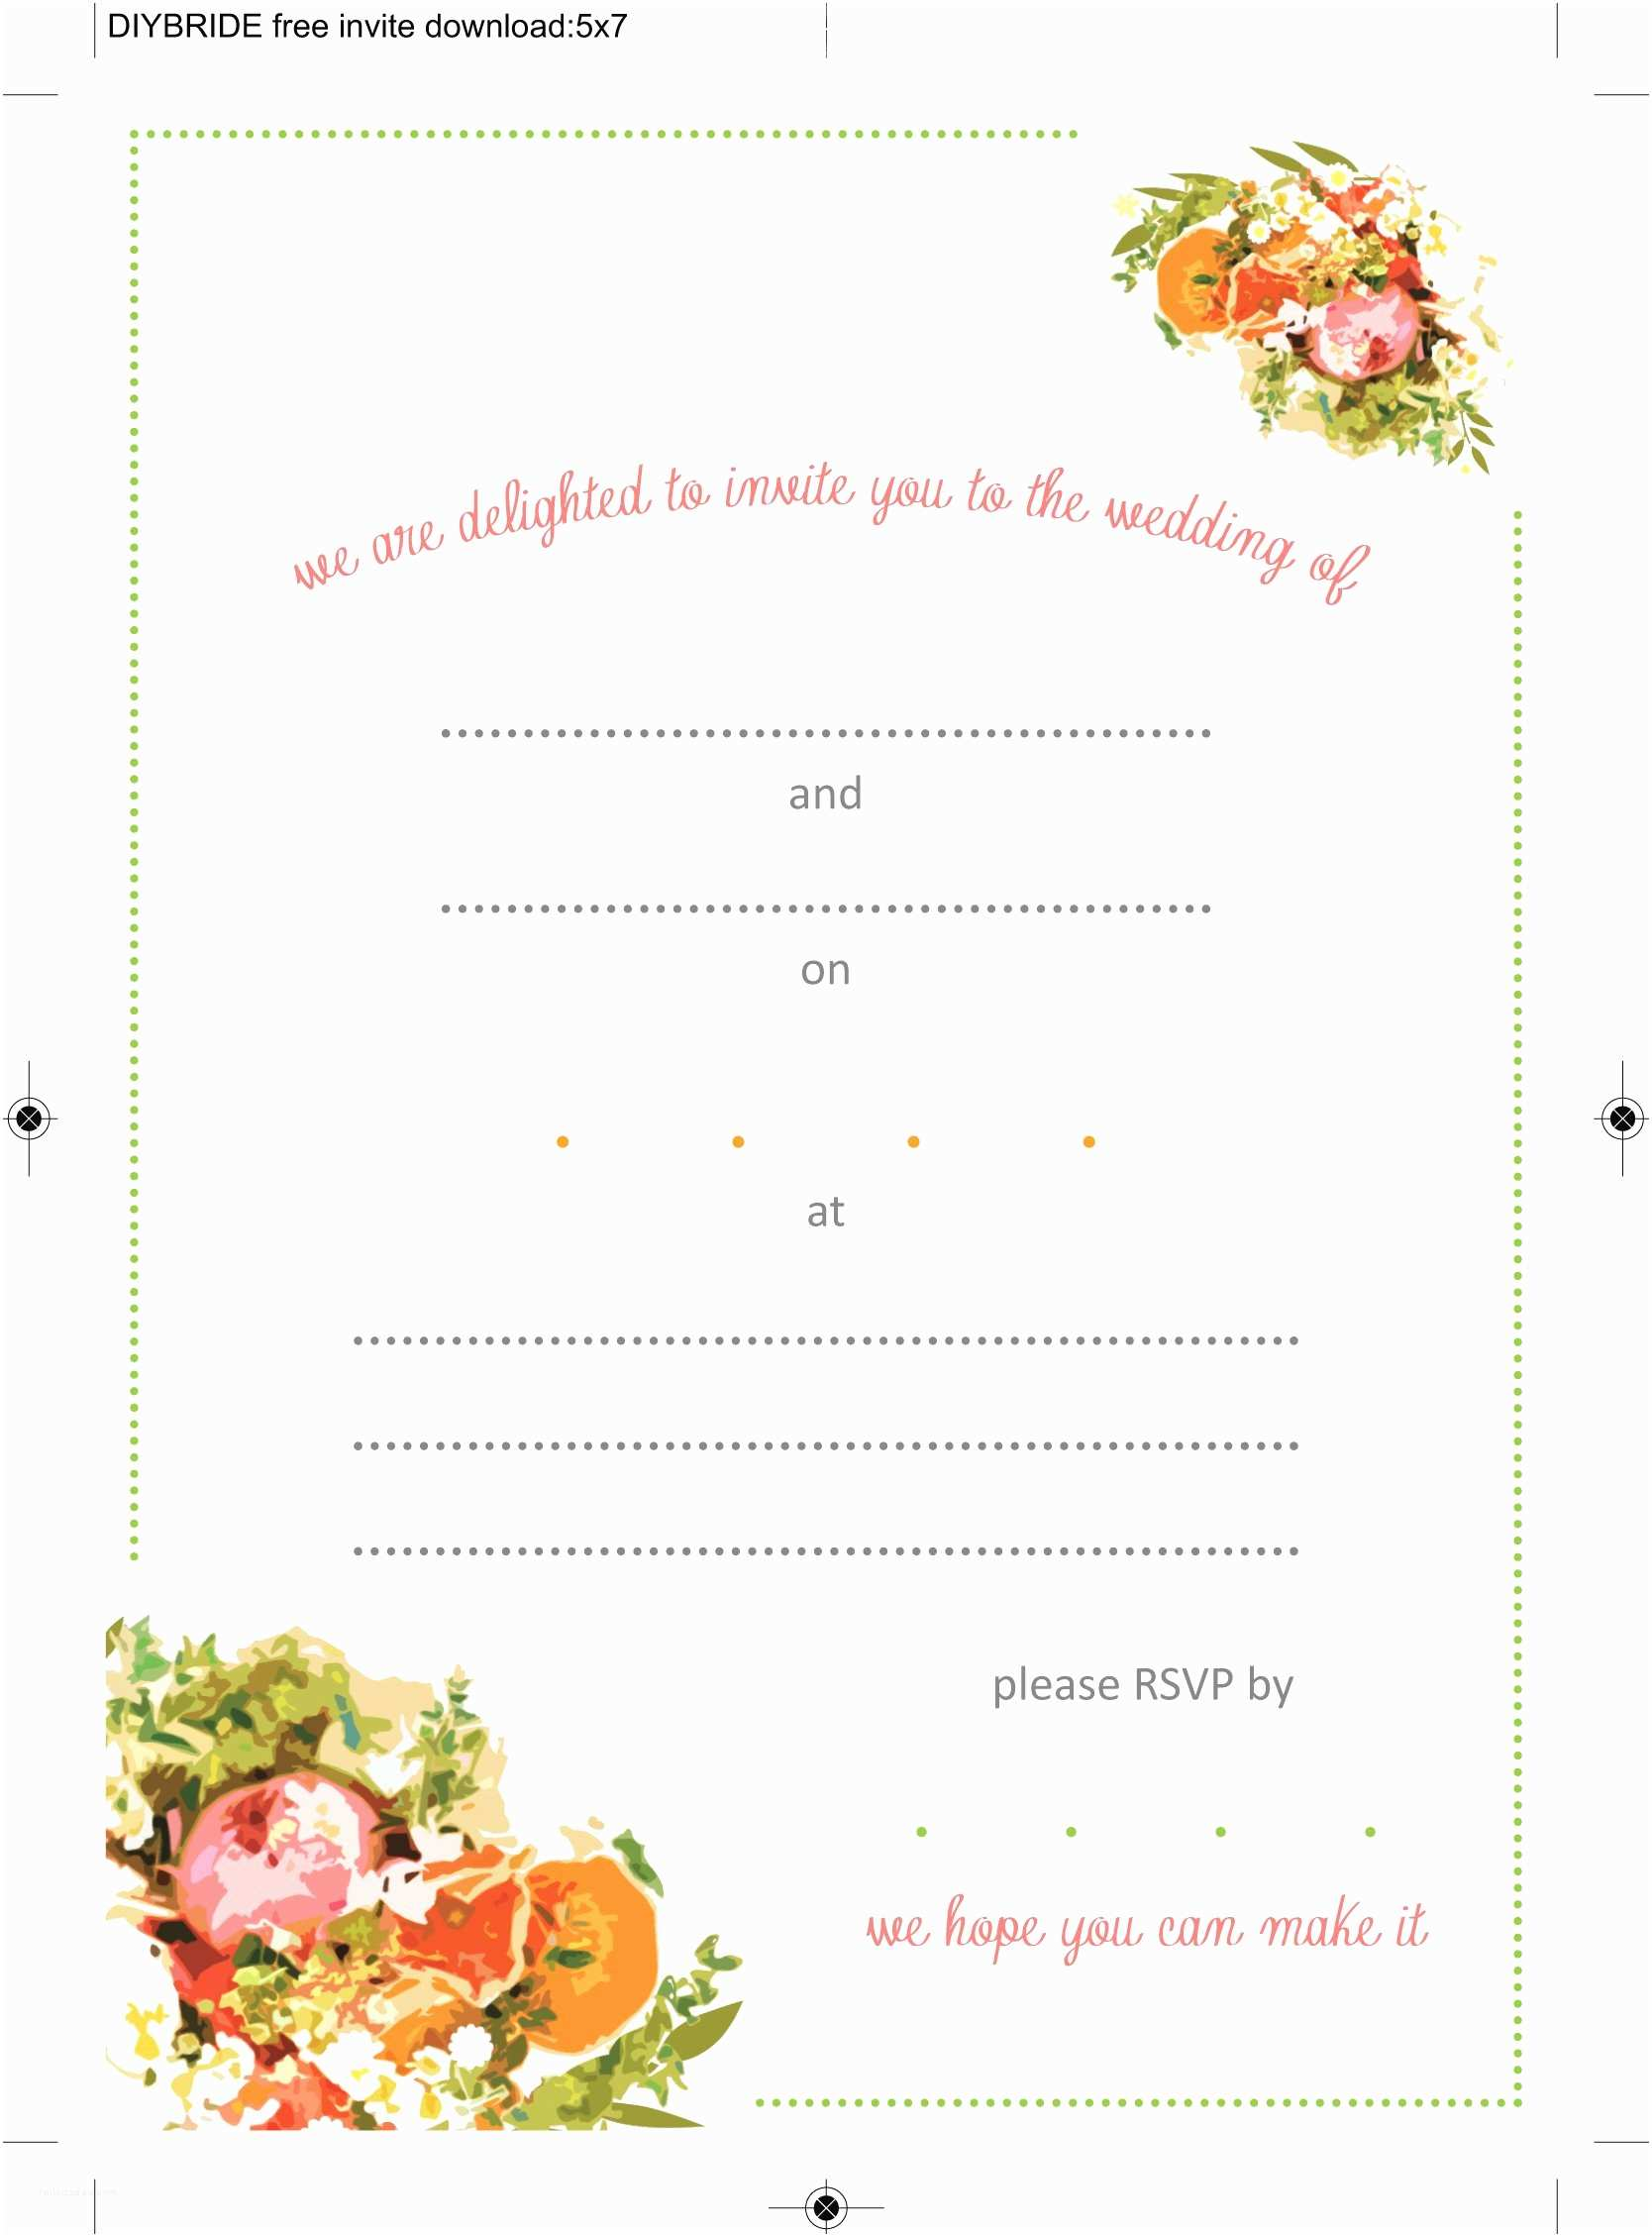 Wedding Invitation Designs Free Download Free Printable Wedding Invitation Templates Download